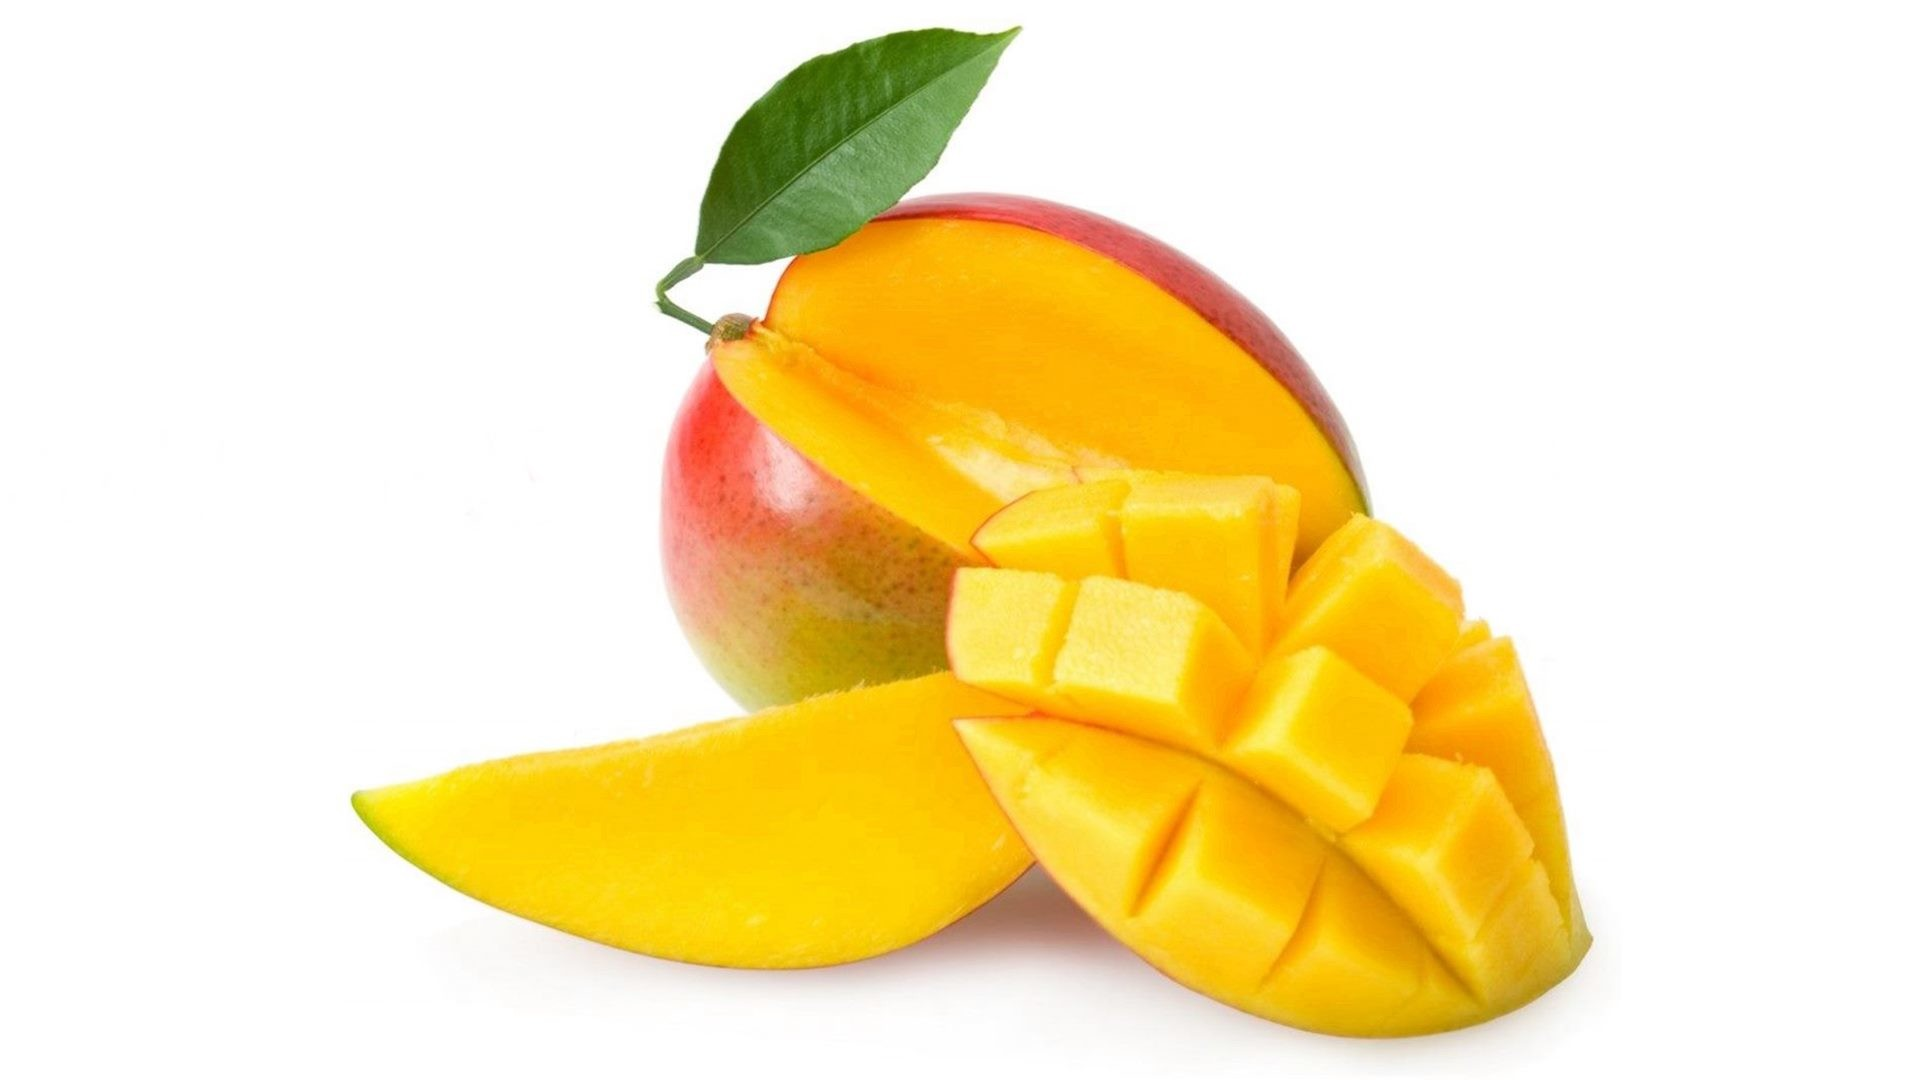 1920x1080 mango hd wallpaper #878681